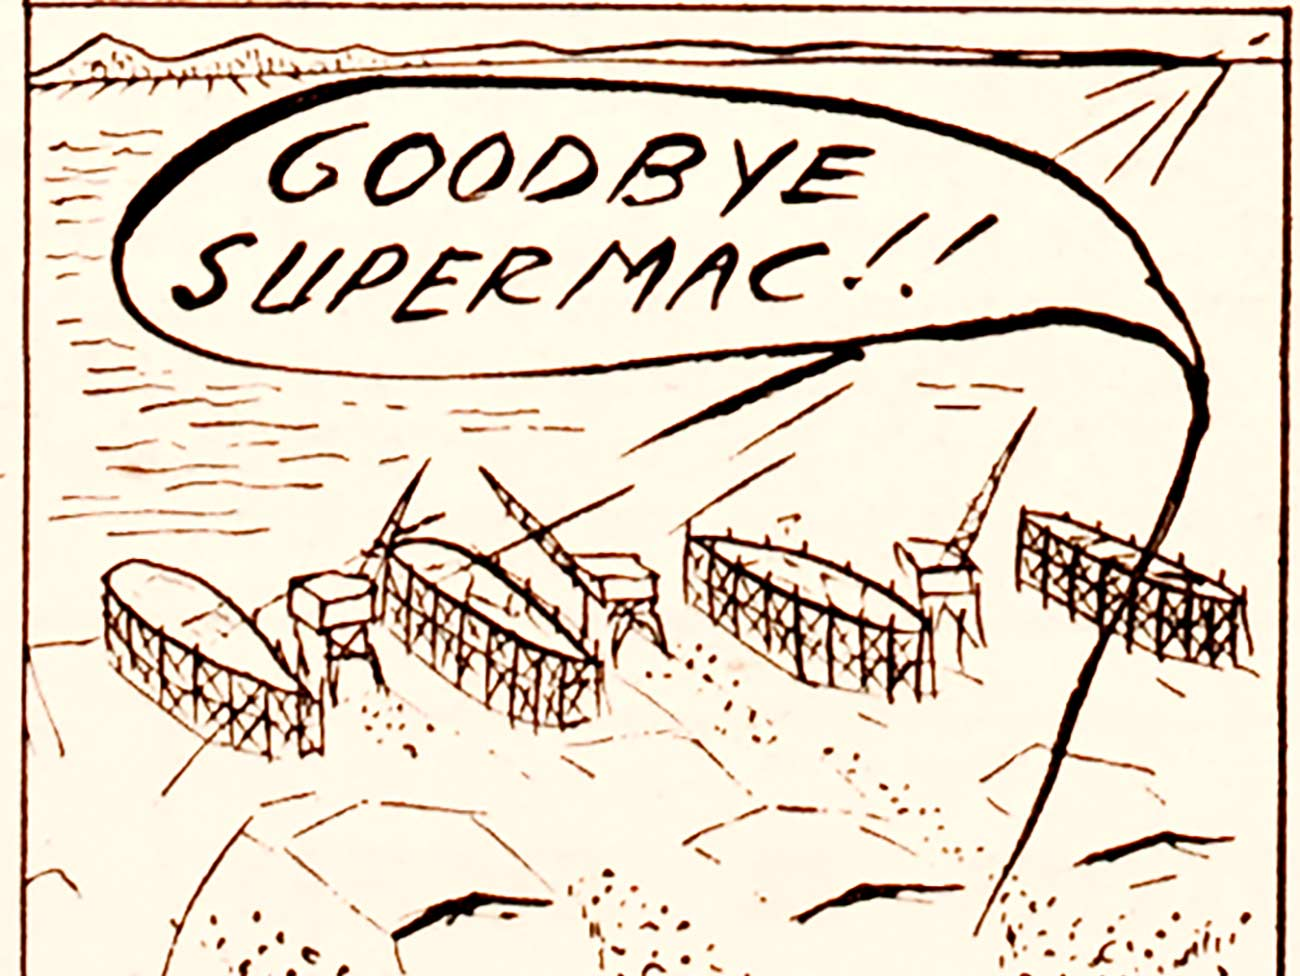 Frame from final Supermac strip